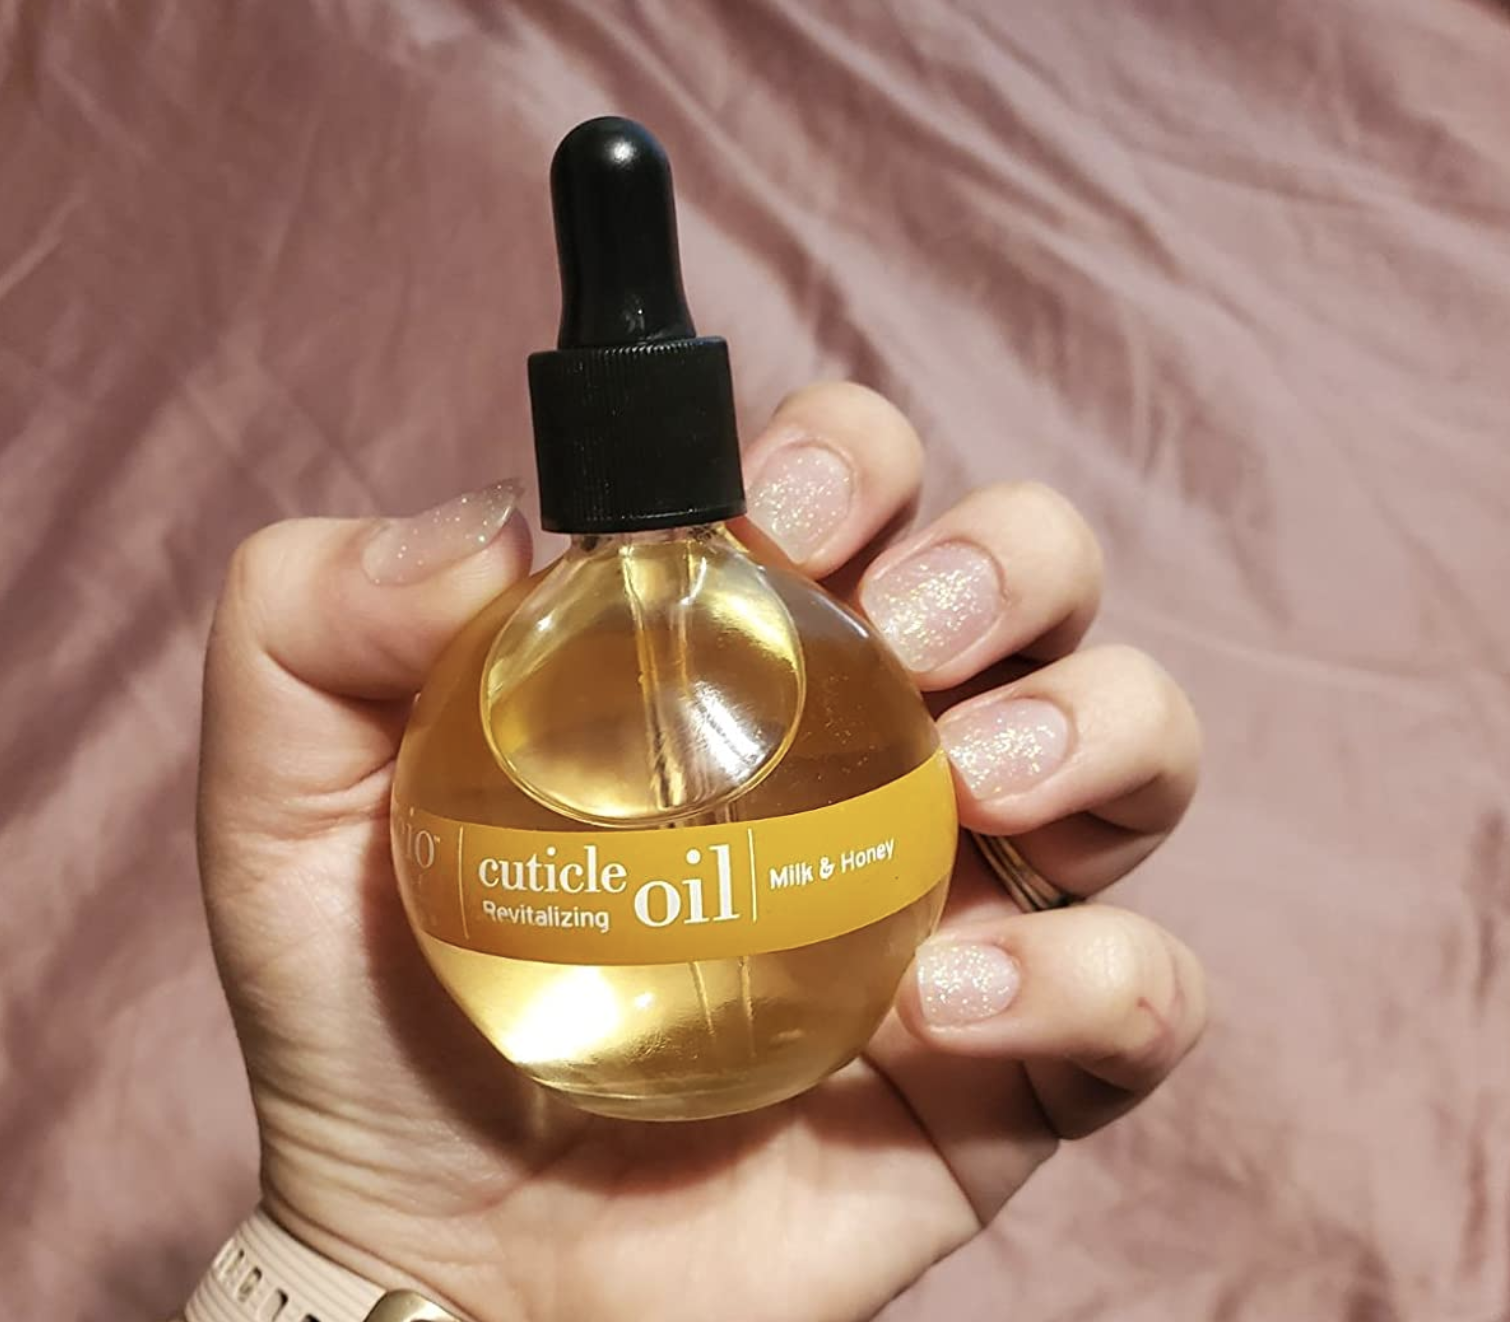 A reviewer holding the bottle, intentionally showing their glittery manicure with healthy looking nails and cuticles